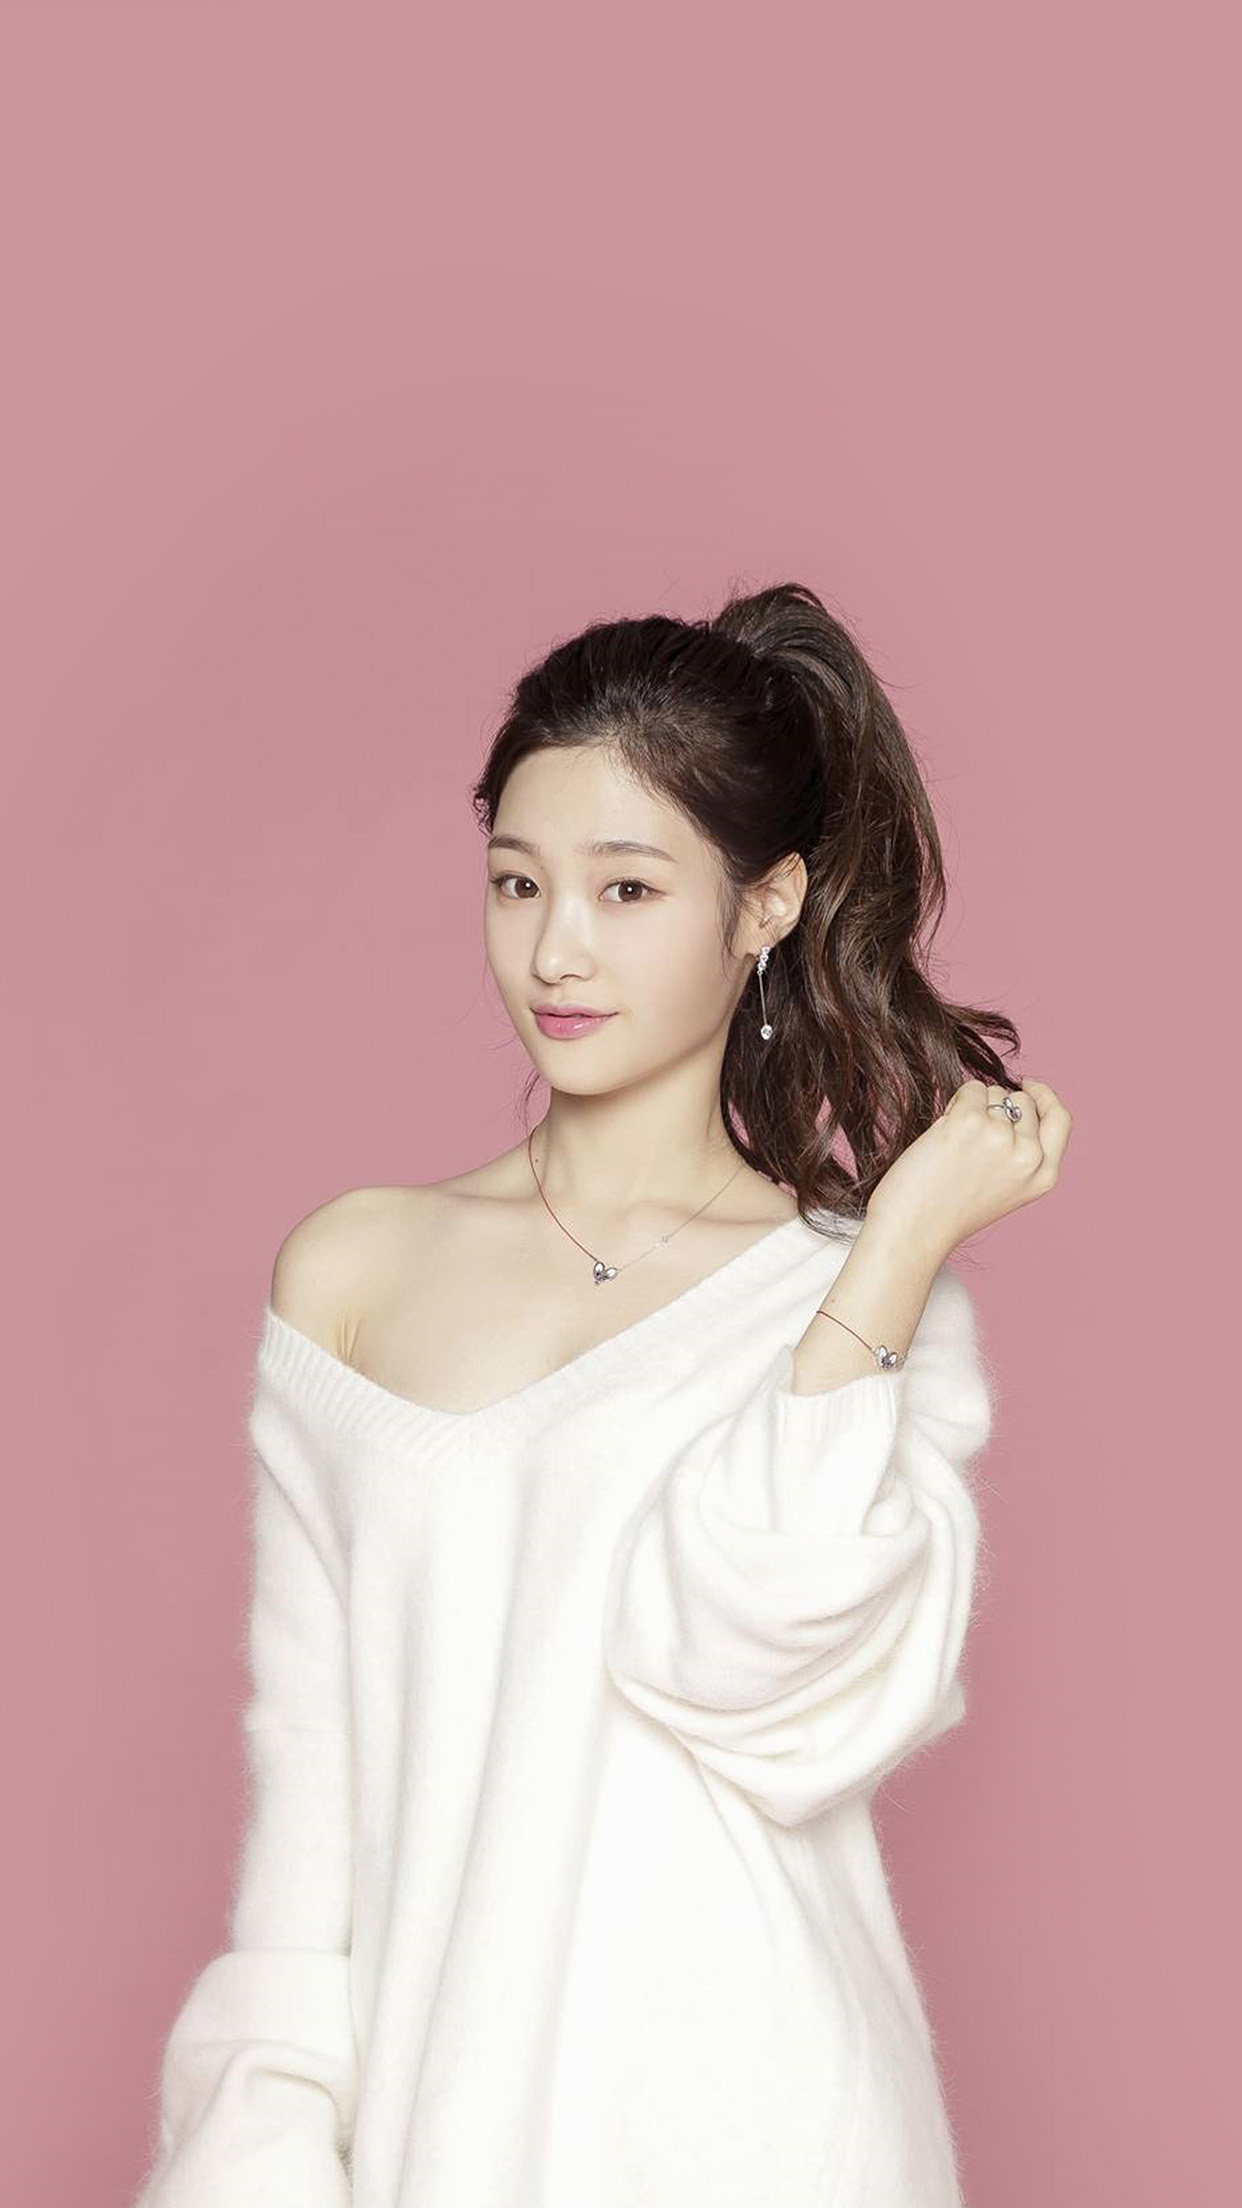 Pink Ioi Chaeyeon Cute Kpop Asian Android Wallpaper Android Hd